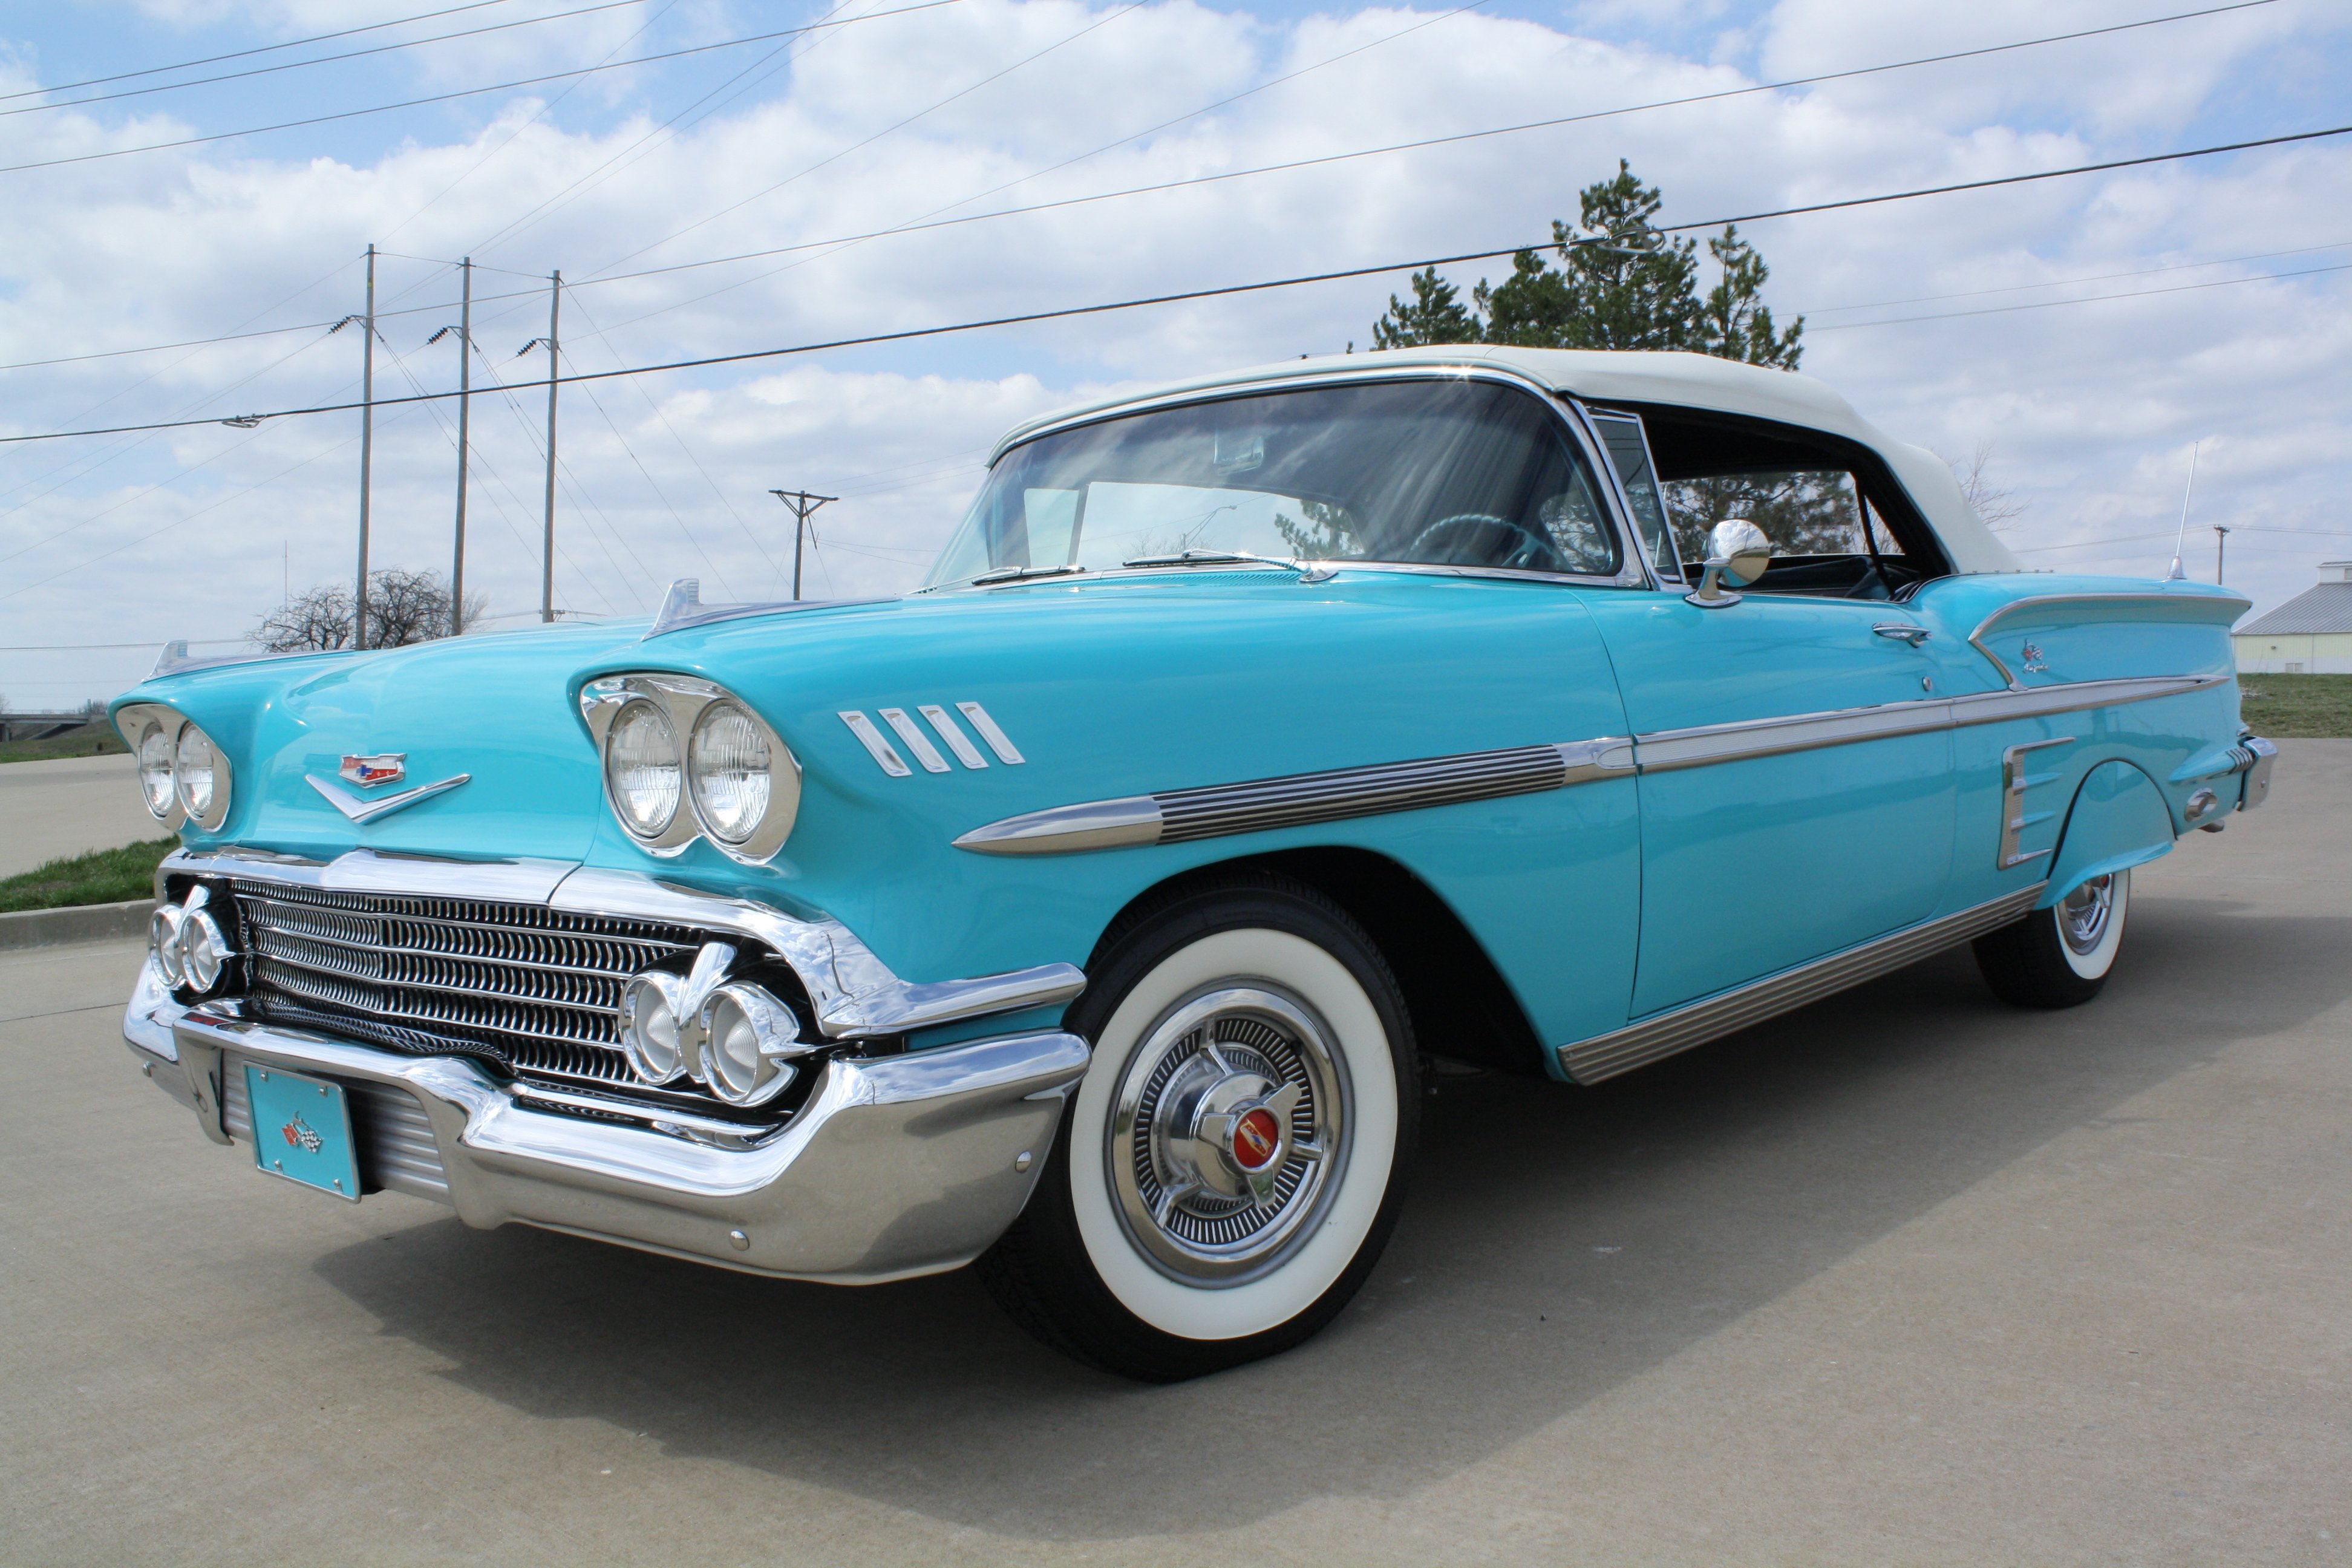 1958 Chevrolet Impala Convertible Classic Old Blue USA 3888x2592-05 ...